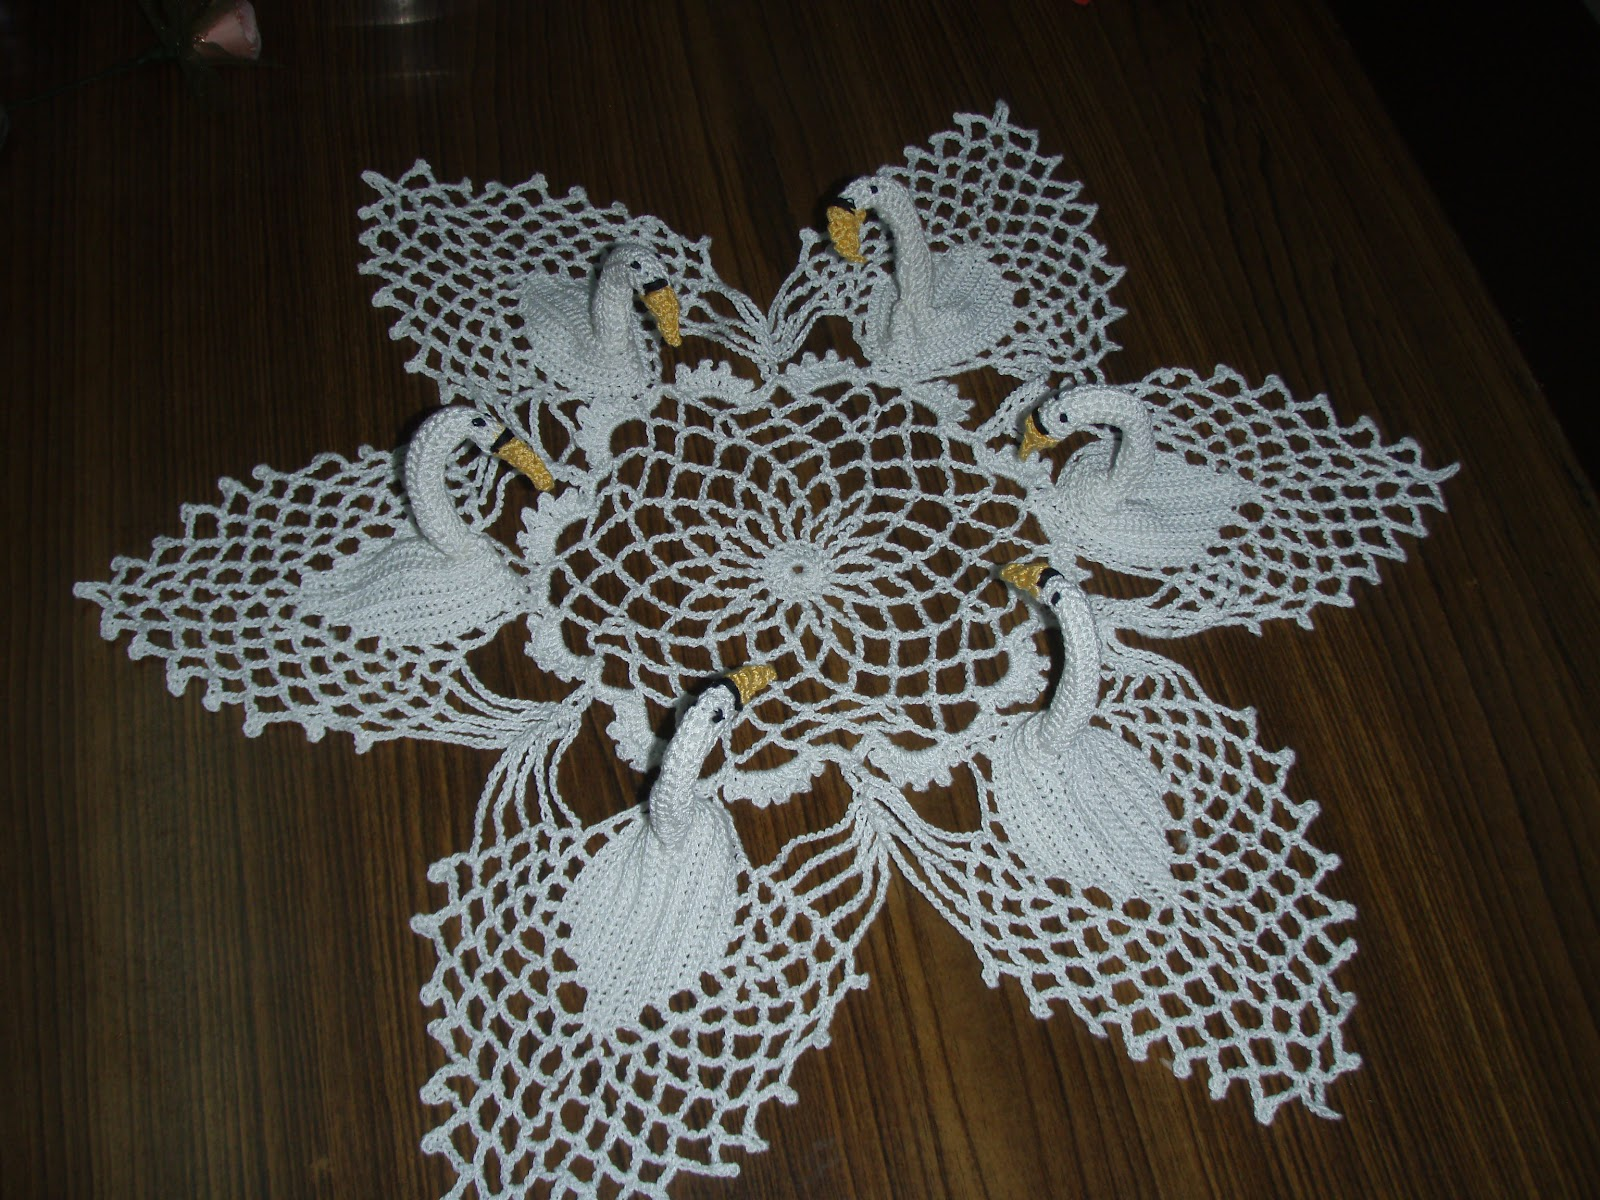 Crochet Patterns Download : Free Crochet Swan Pattern ~ Free Crochet Patterns